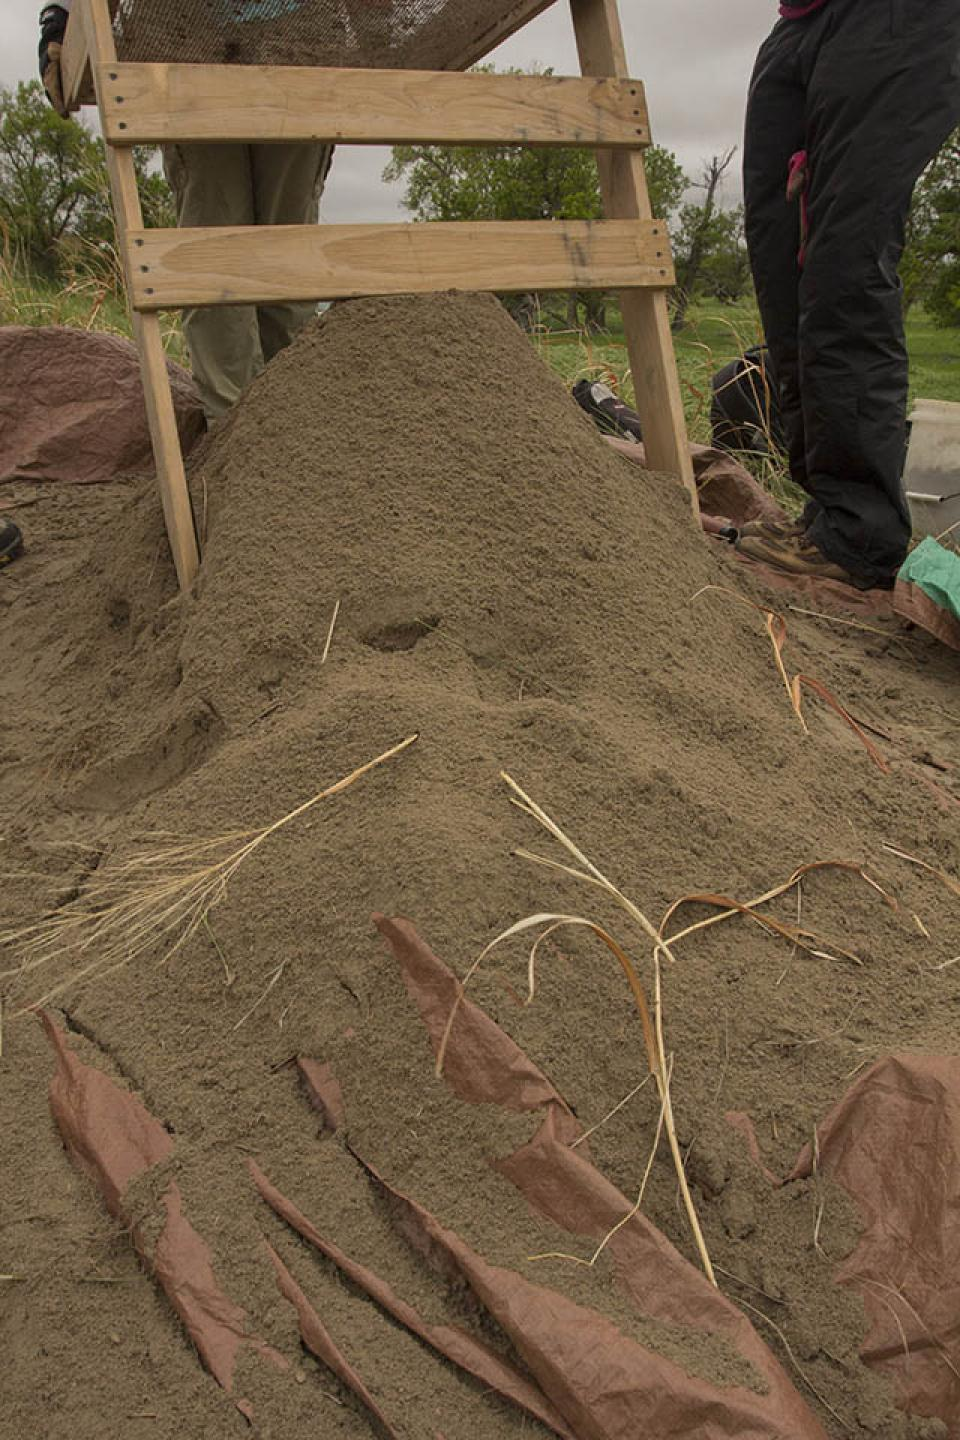 The team screens dirt to recover artifacts found while digging the test unit at Kelso site.